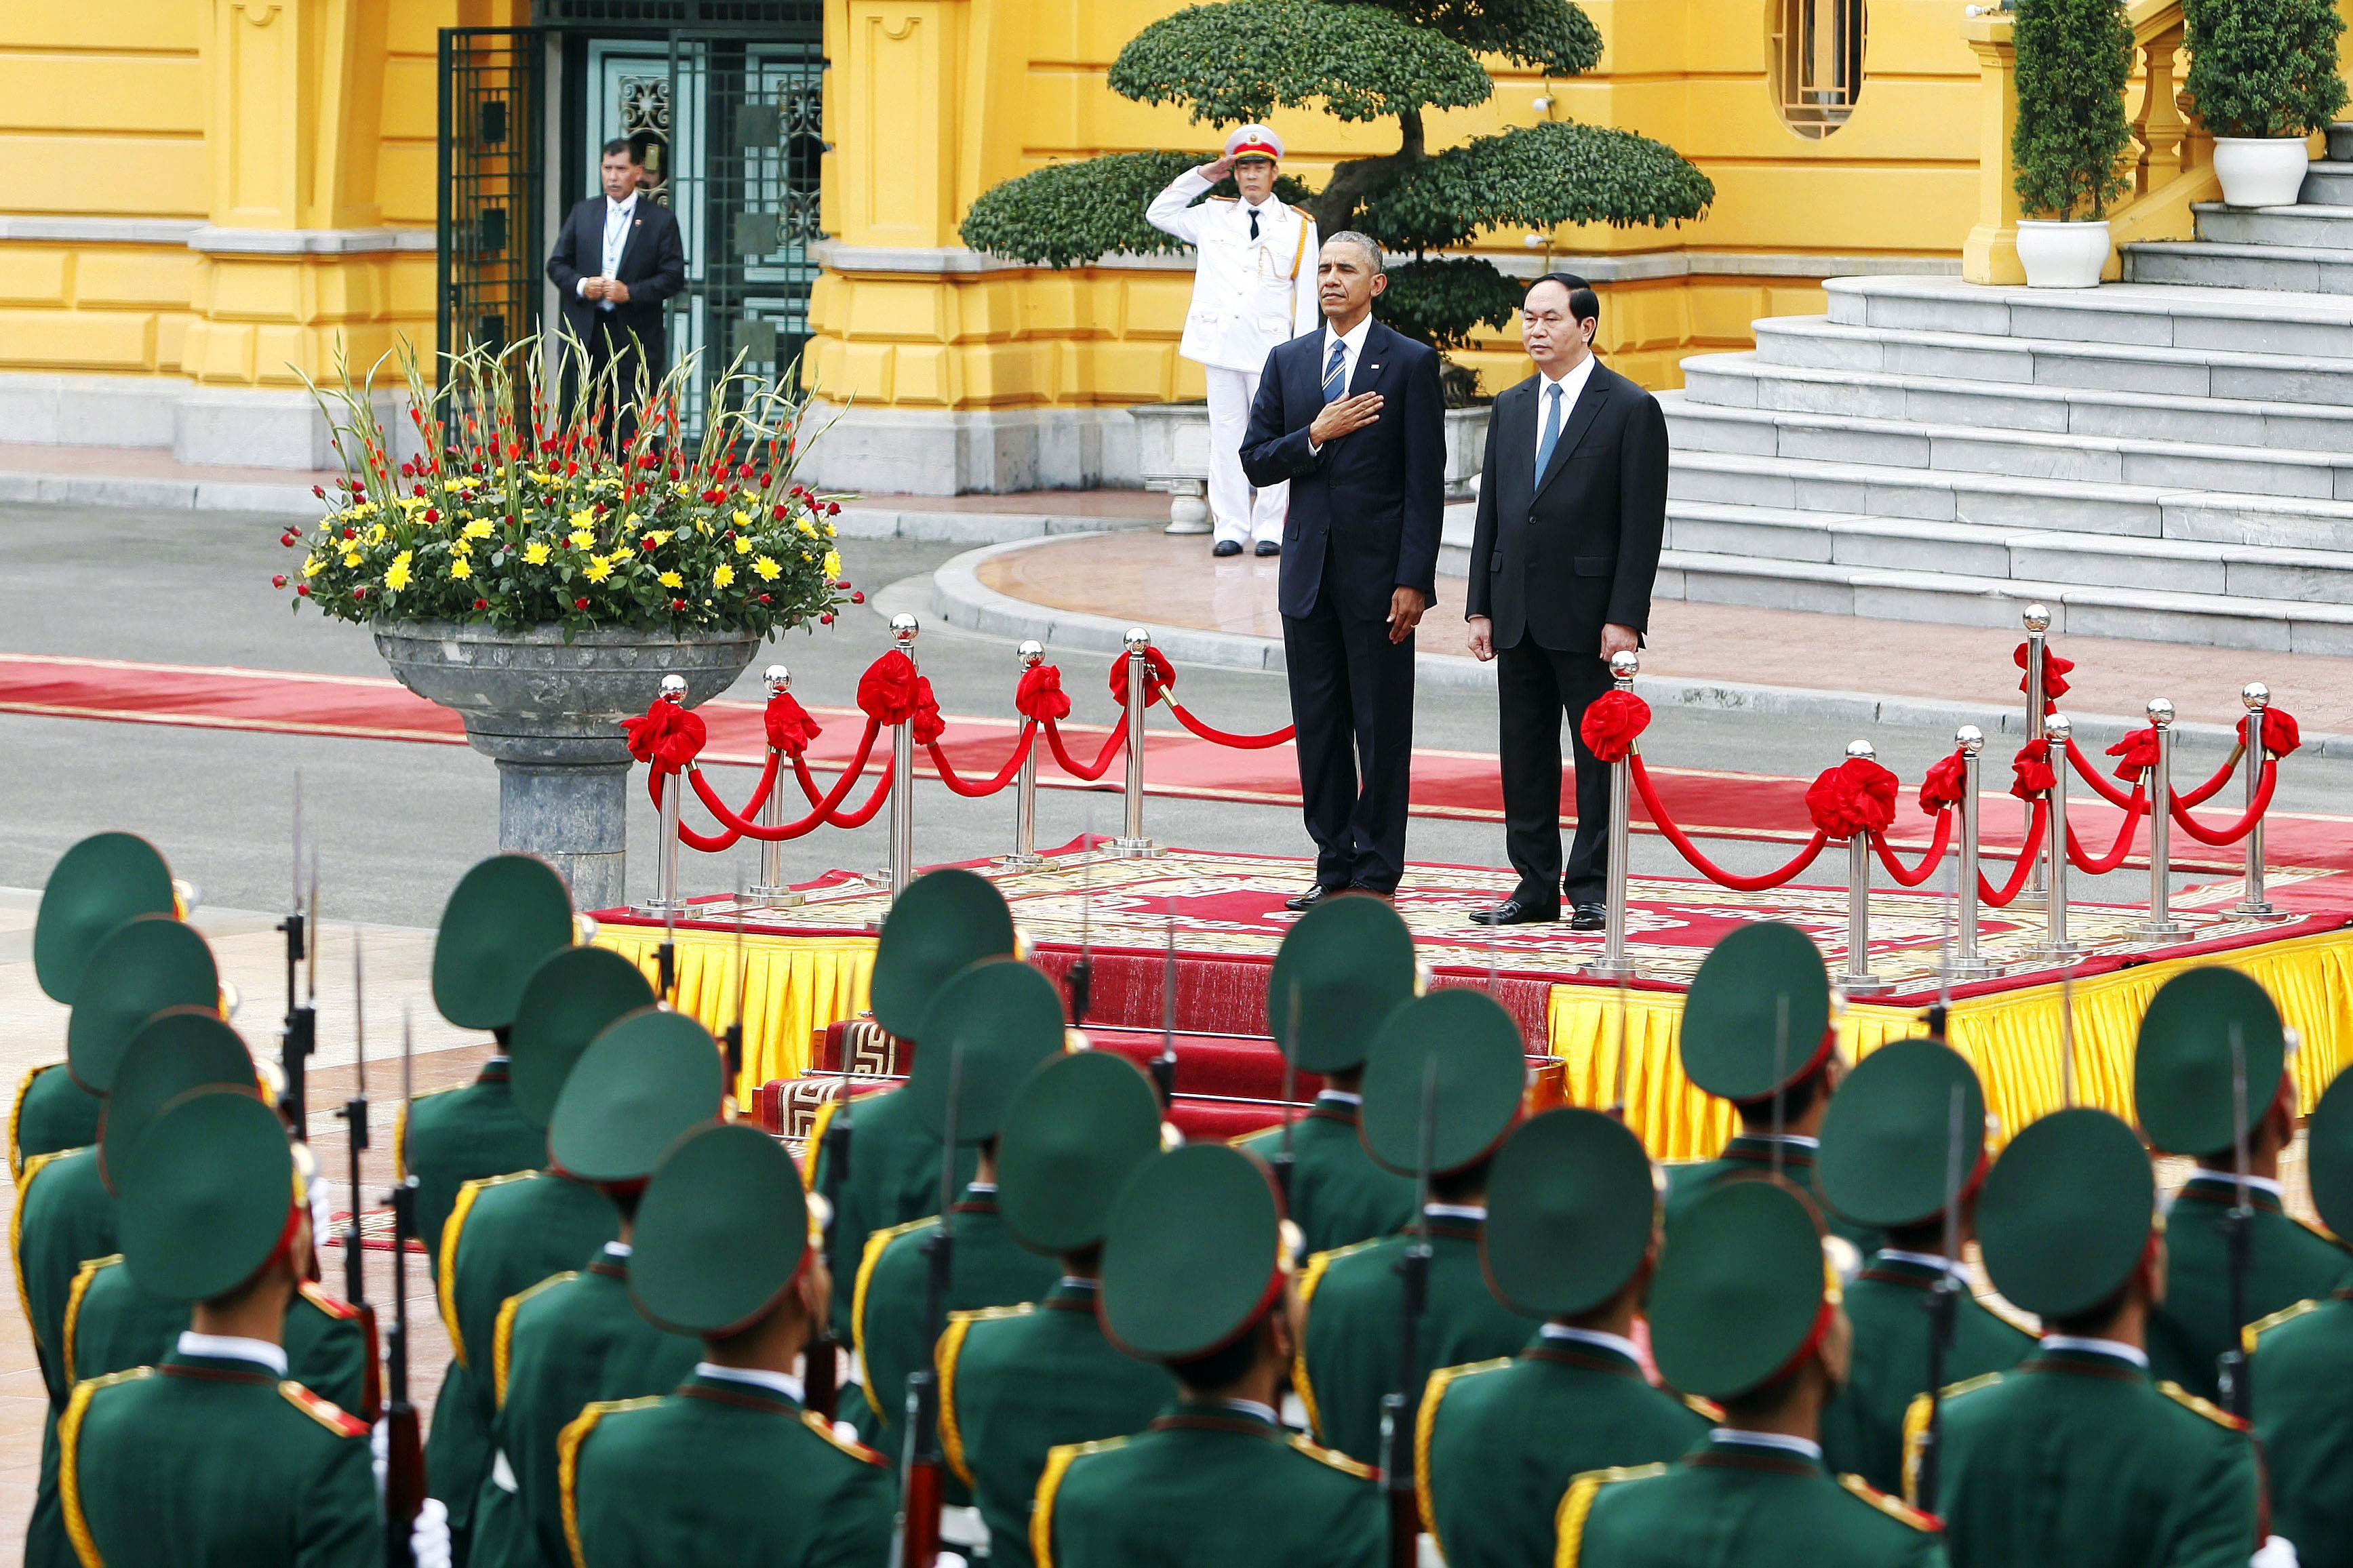 U.S. President Barack Obama and Vietnam's President Tran Dai Quang review an honor guard at the Presidential Palace in Hanoi, Vietnam on May 23, 2016.